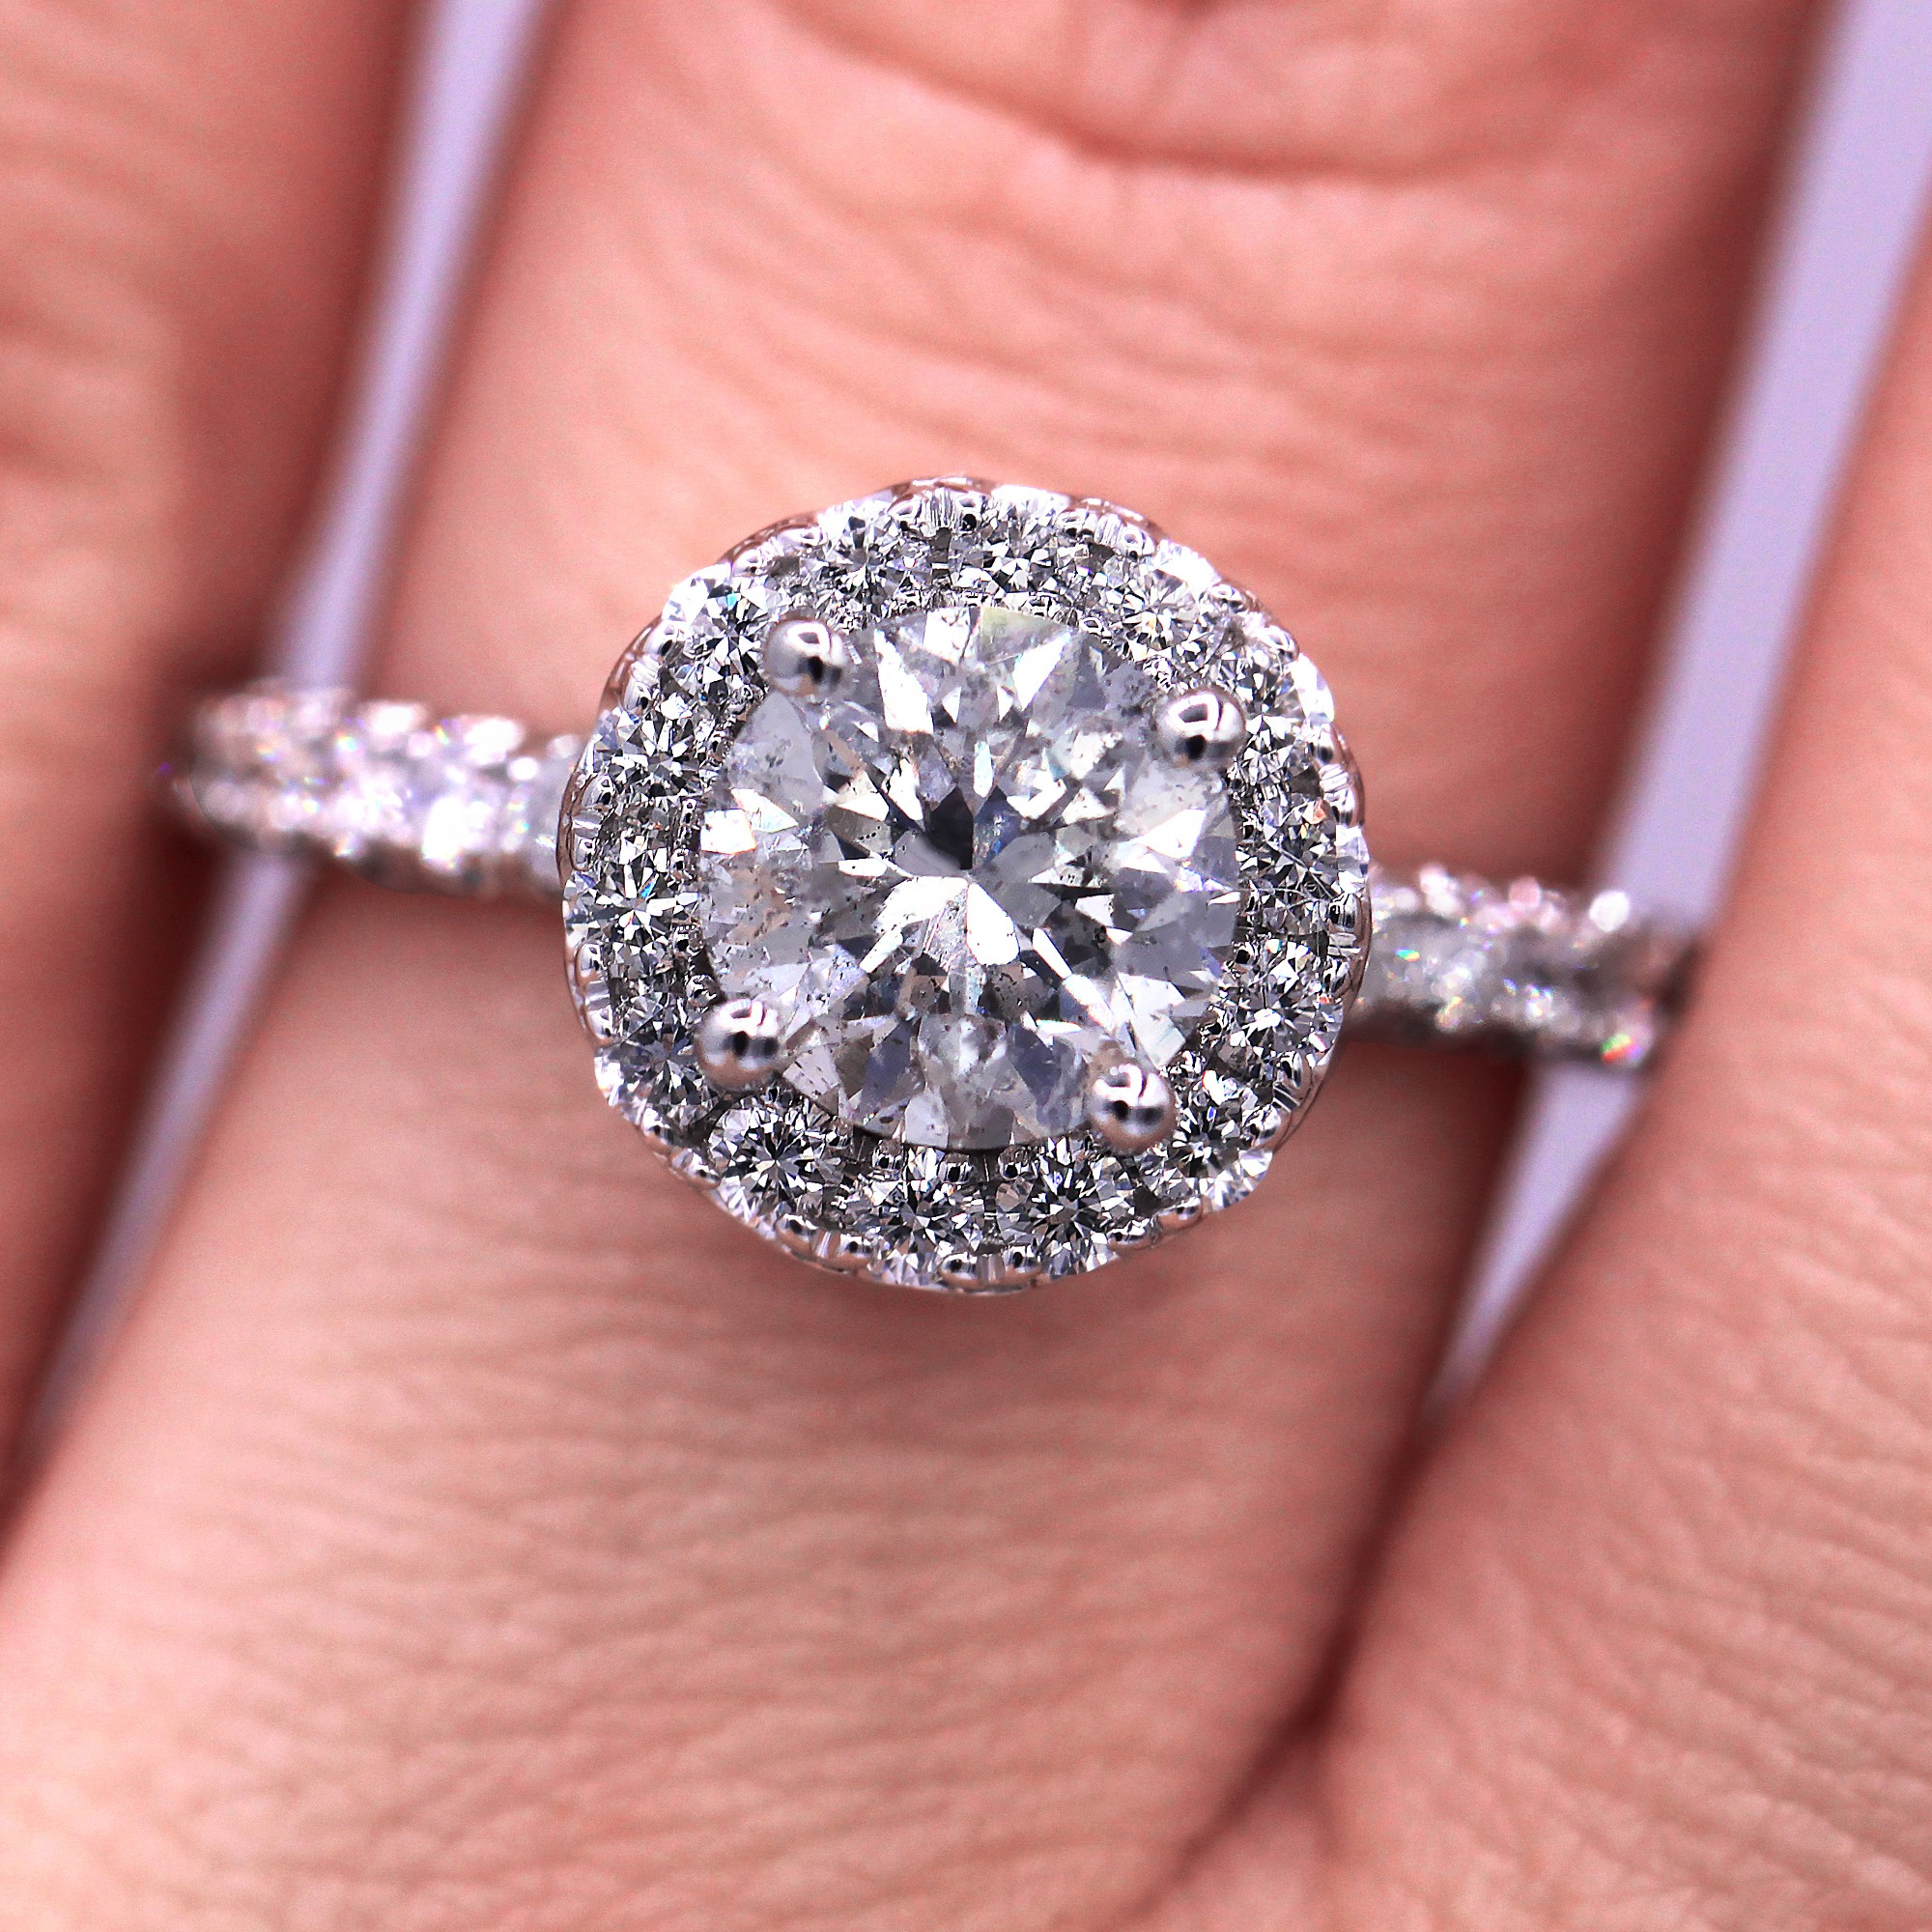 Dream diamond engagement ring with 1.84 cts round diamonds